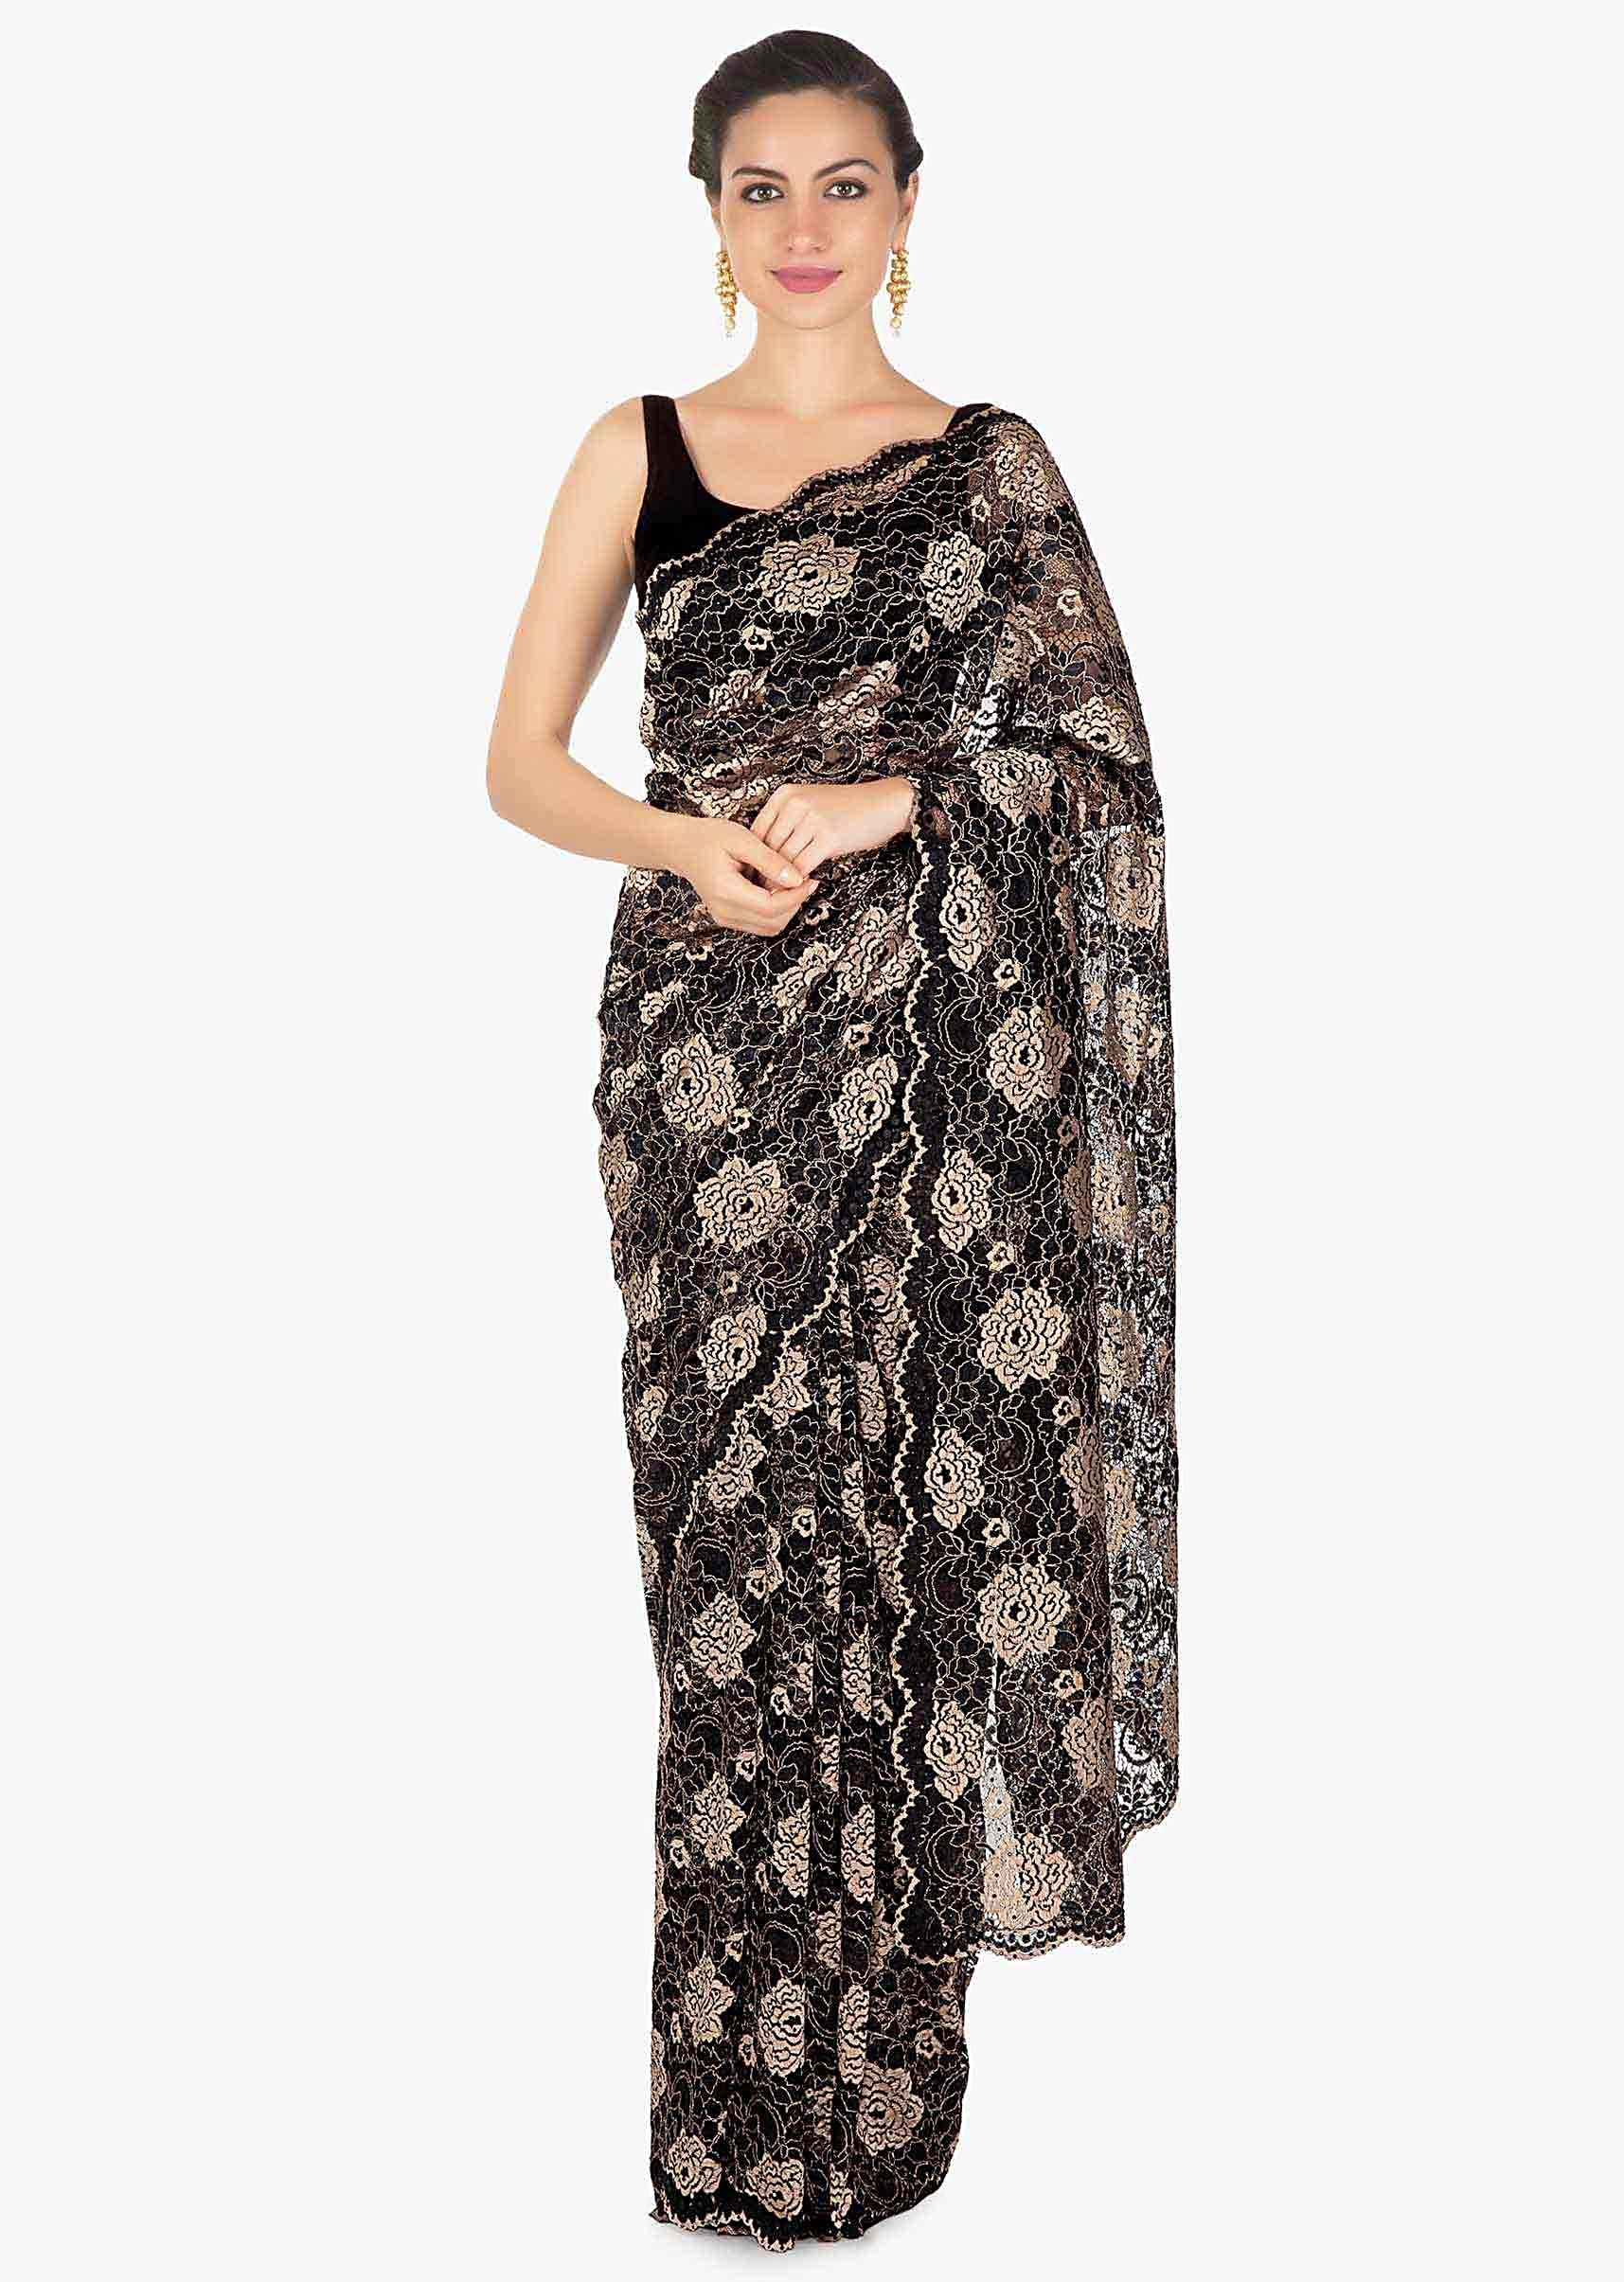 66b771ca1c1 Black and gold chantilly lace saree with scalloped border only on Kalki